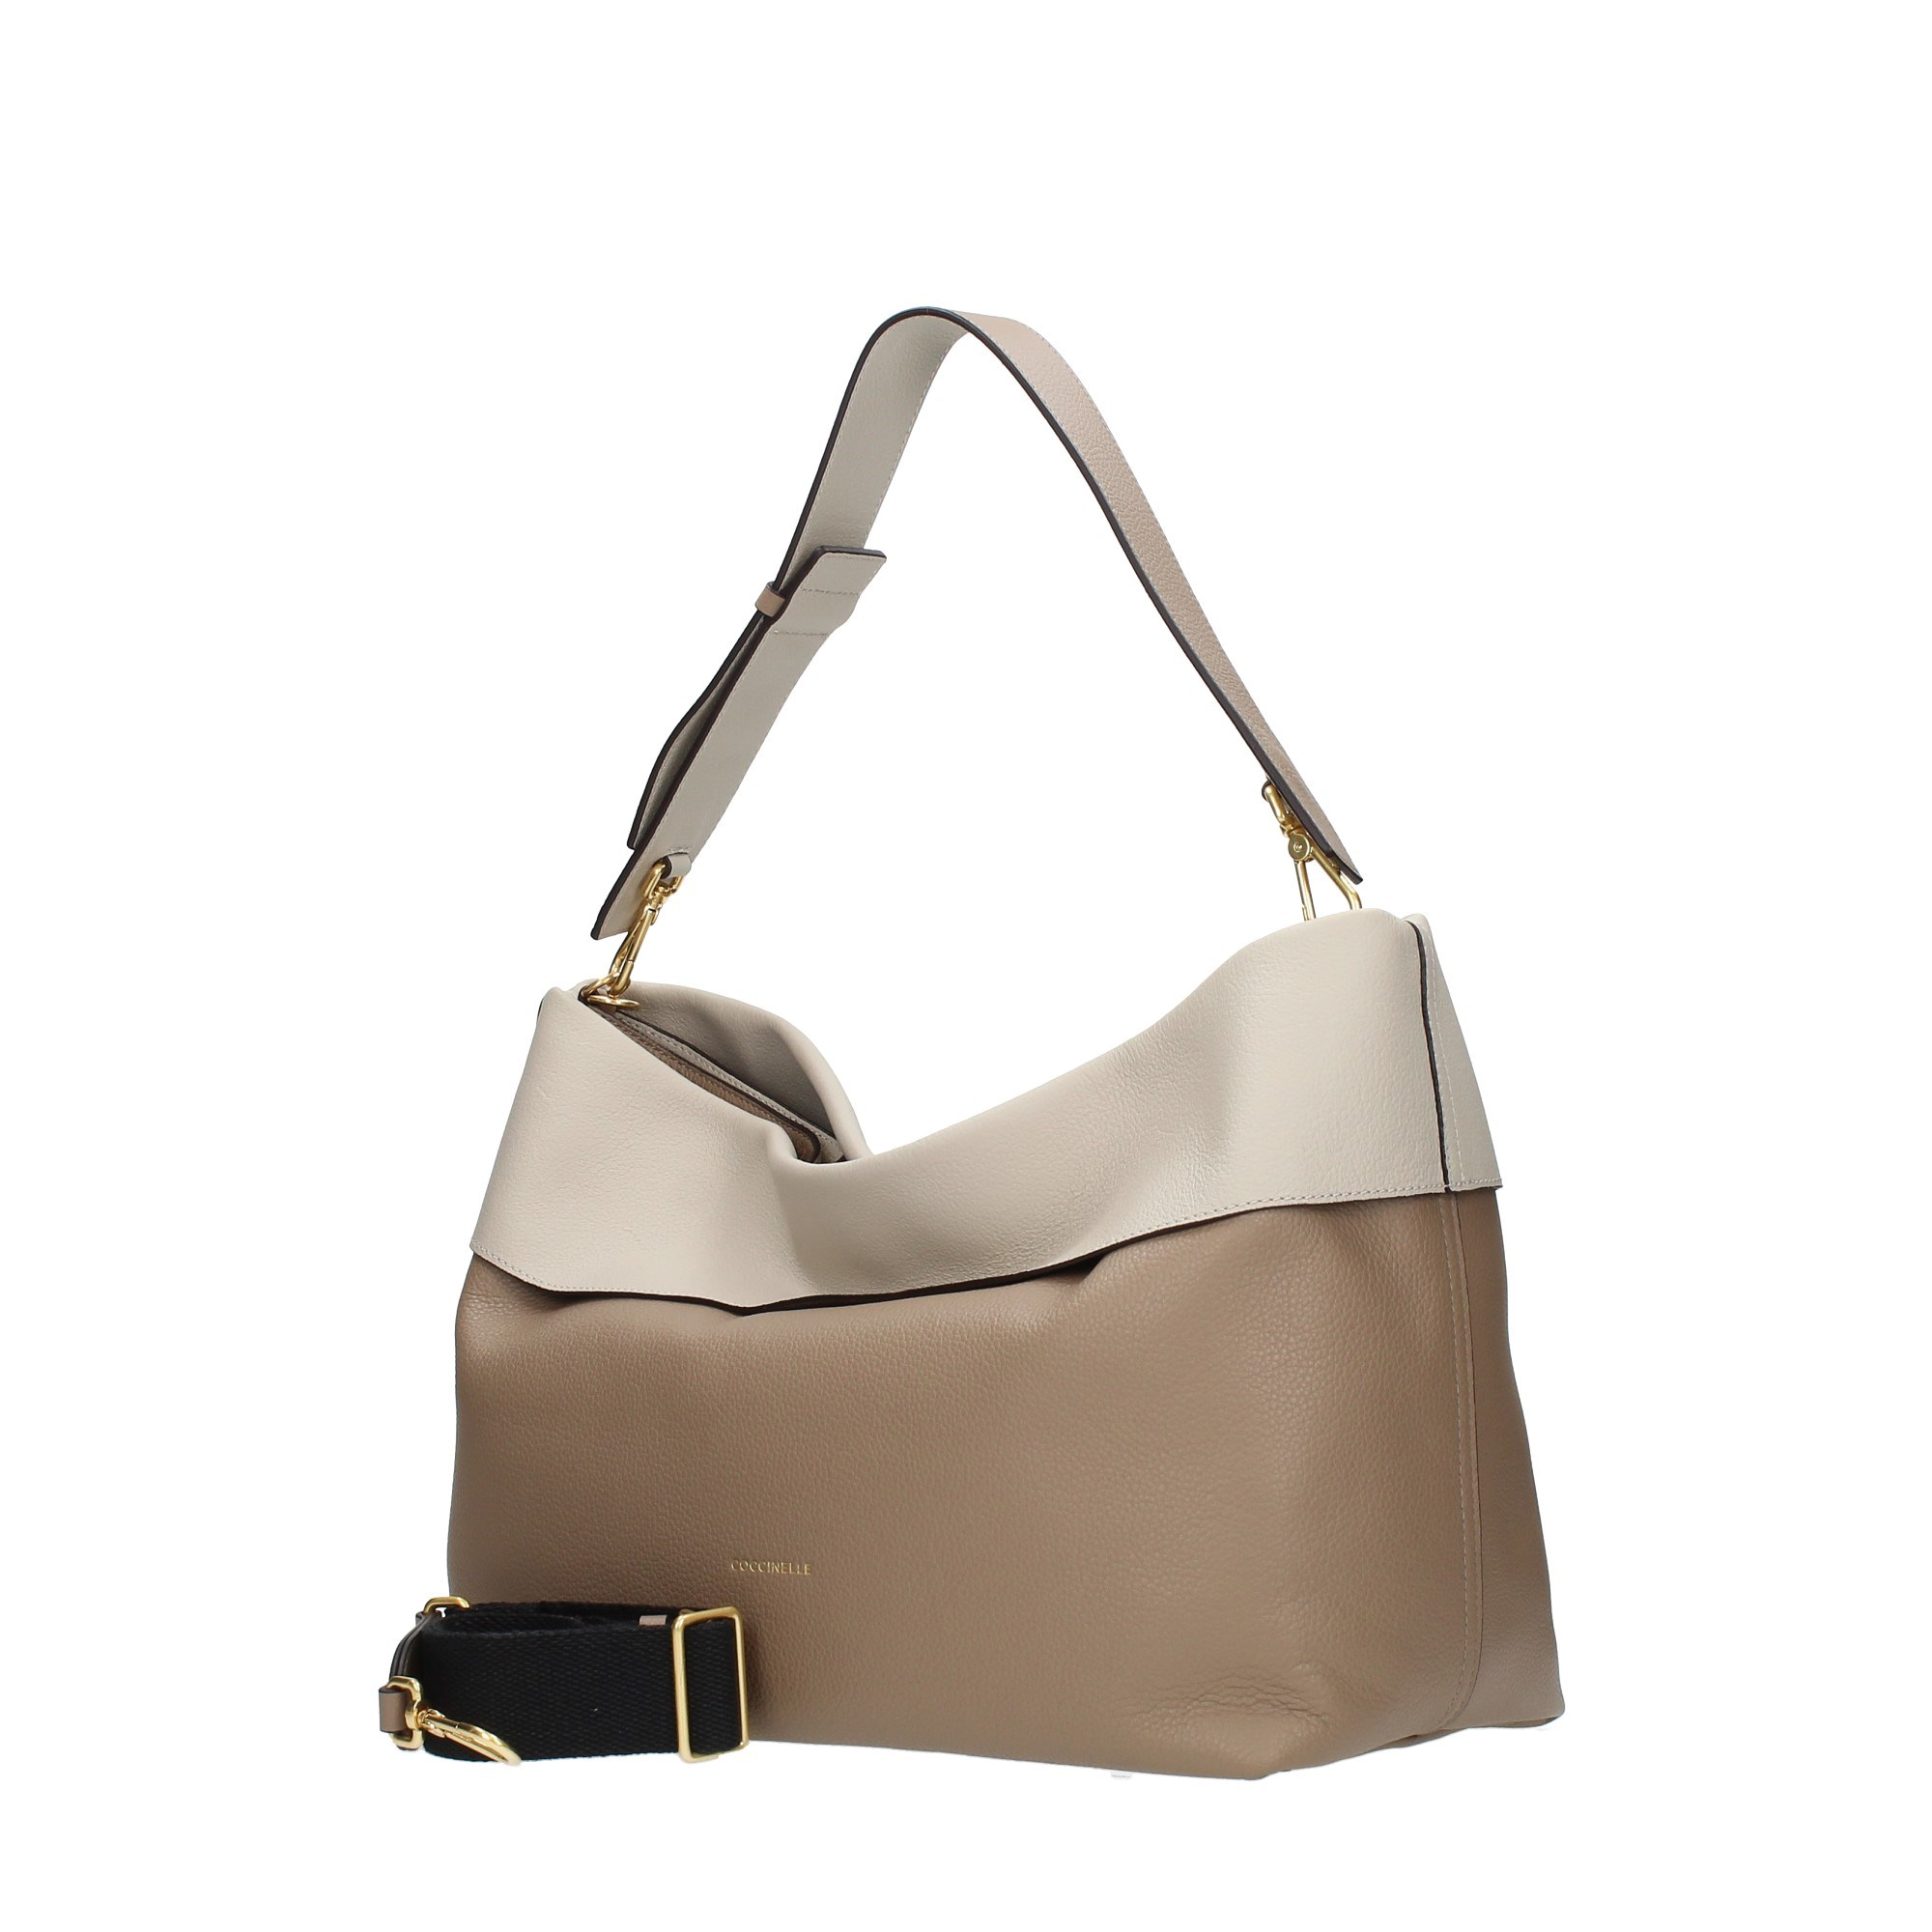 Coccinelle Accessories Women Shoulder Bags Taupe GB0 130101